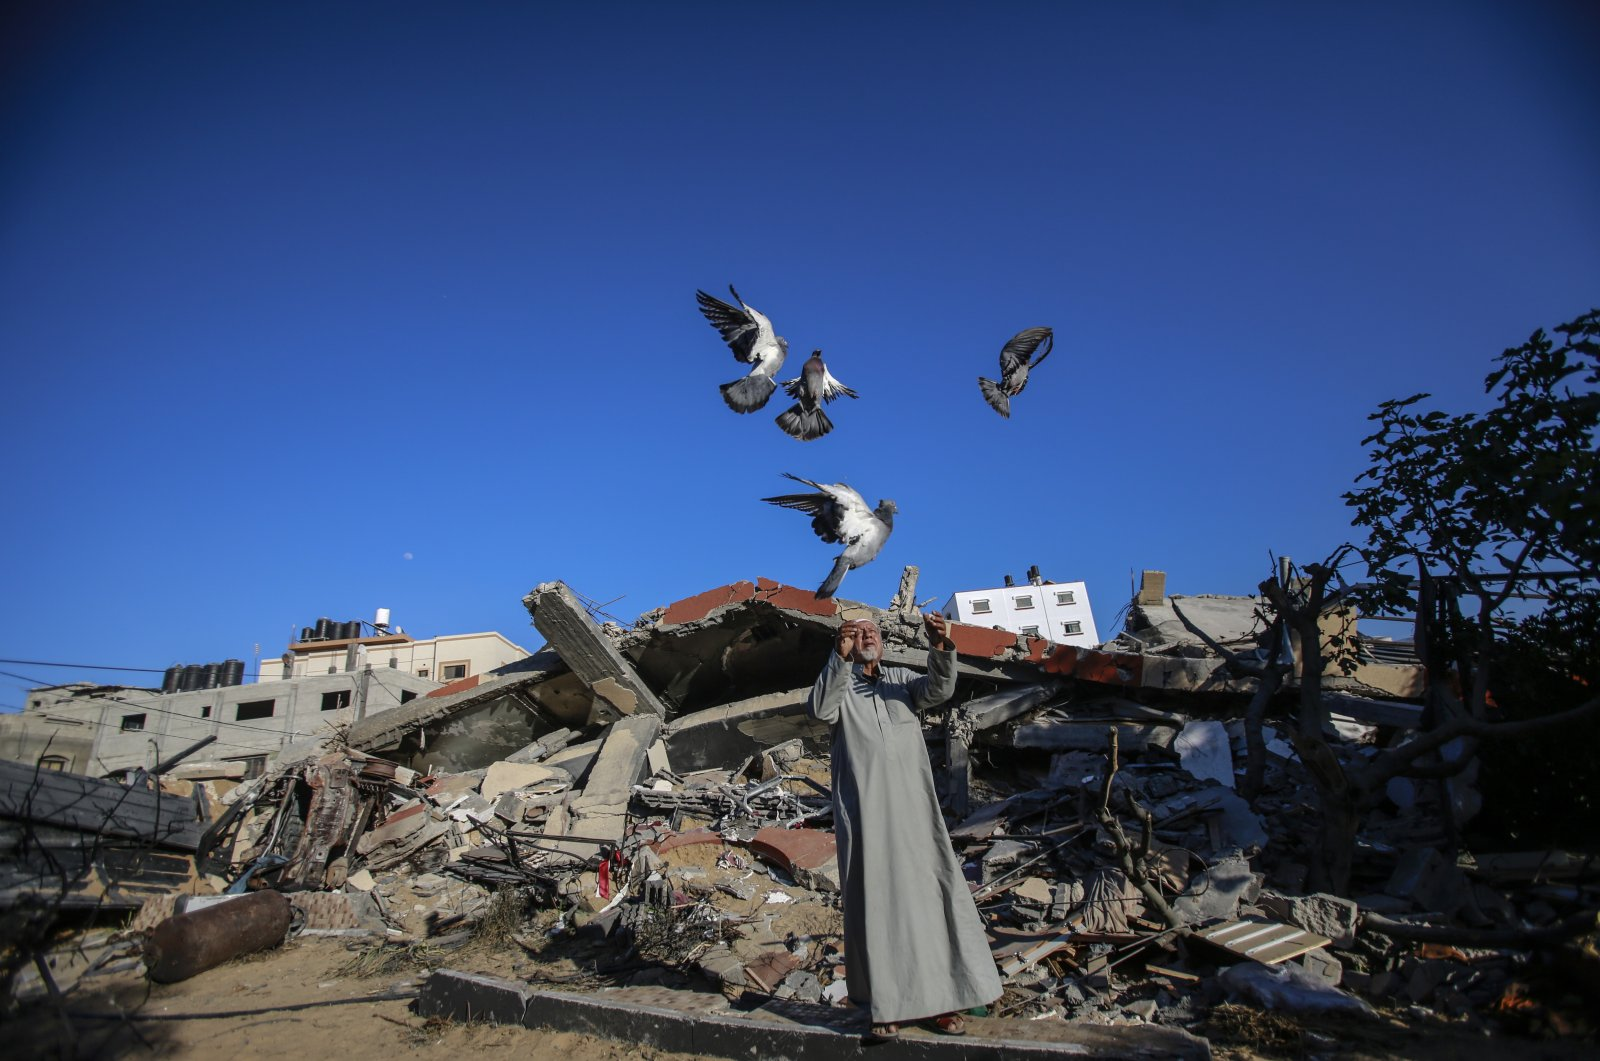 A Palestinian man plays with his birds above the ruins of his home, destroyed in recent Israeli airstrikes in Gaza city, Palestine, May 23, 2021. (Photo by Getty Images)